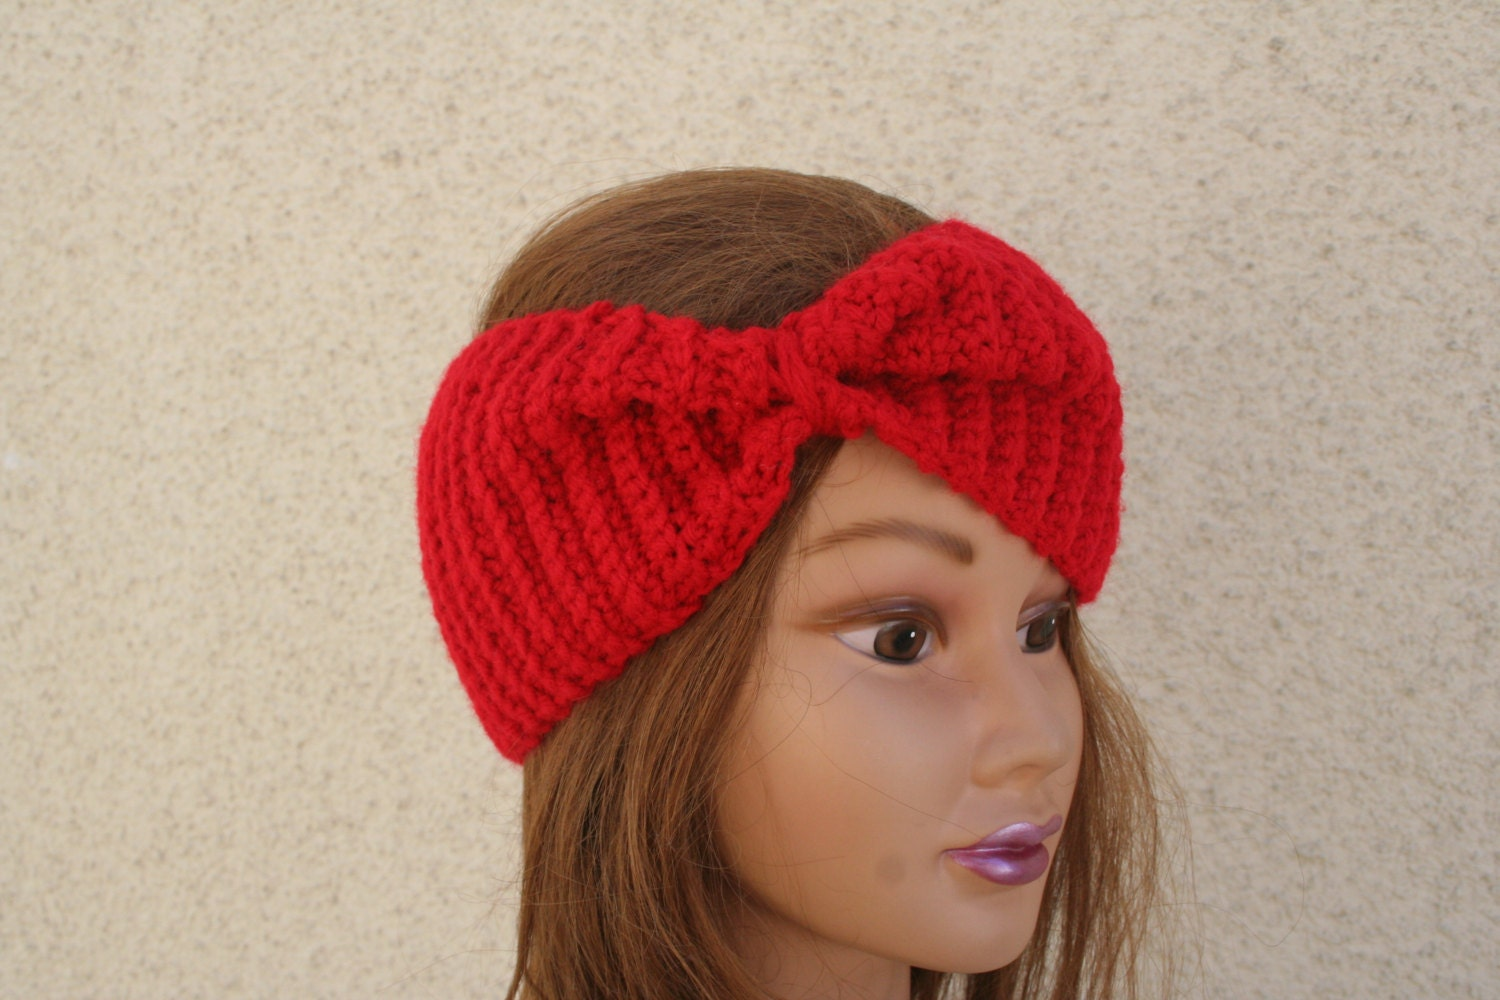 Crochet Hair Towel : Turban Headband Crochet Turban Head Scarf Accessories Hair Headband ...